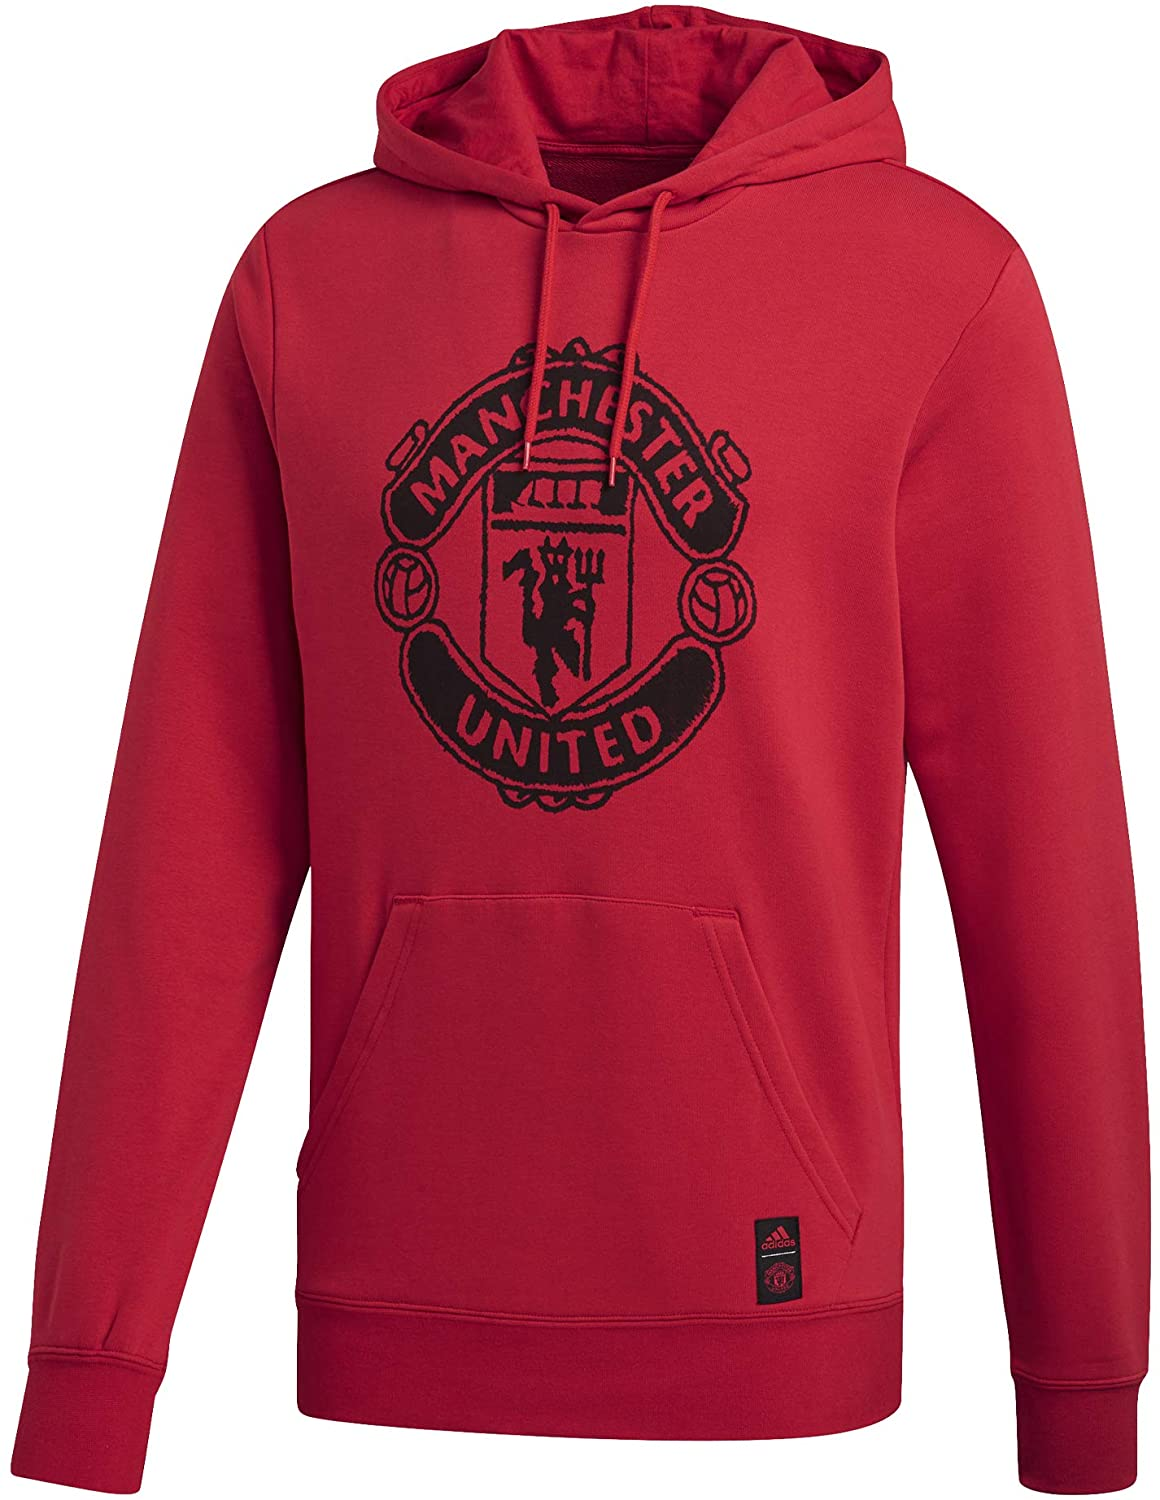 adidas 2020-2021 Man Utd DNA Hooded Top (Red)